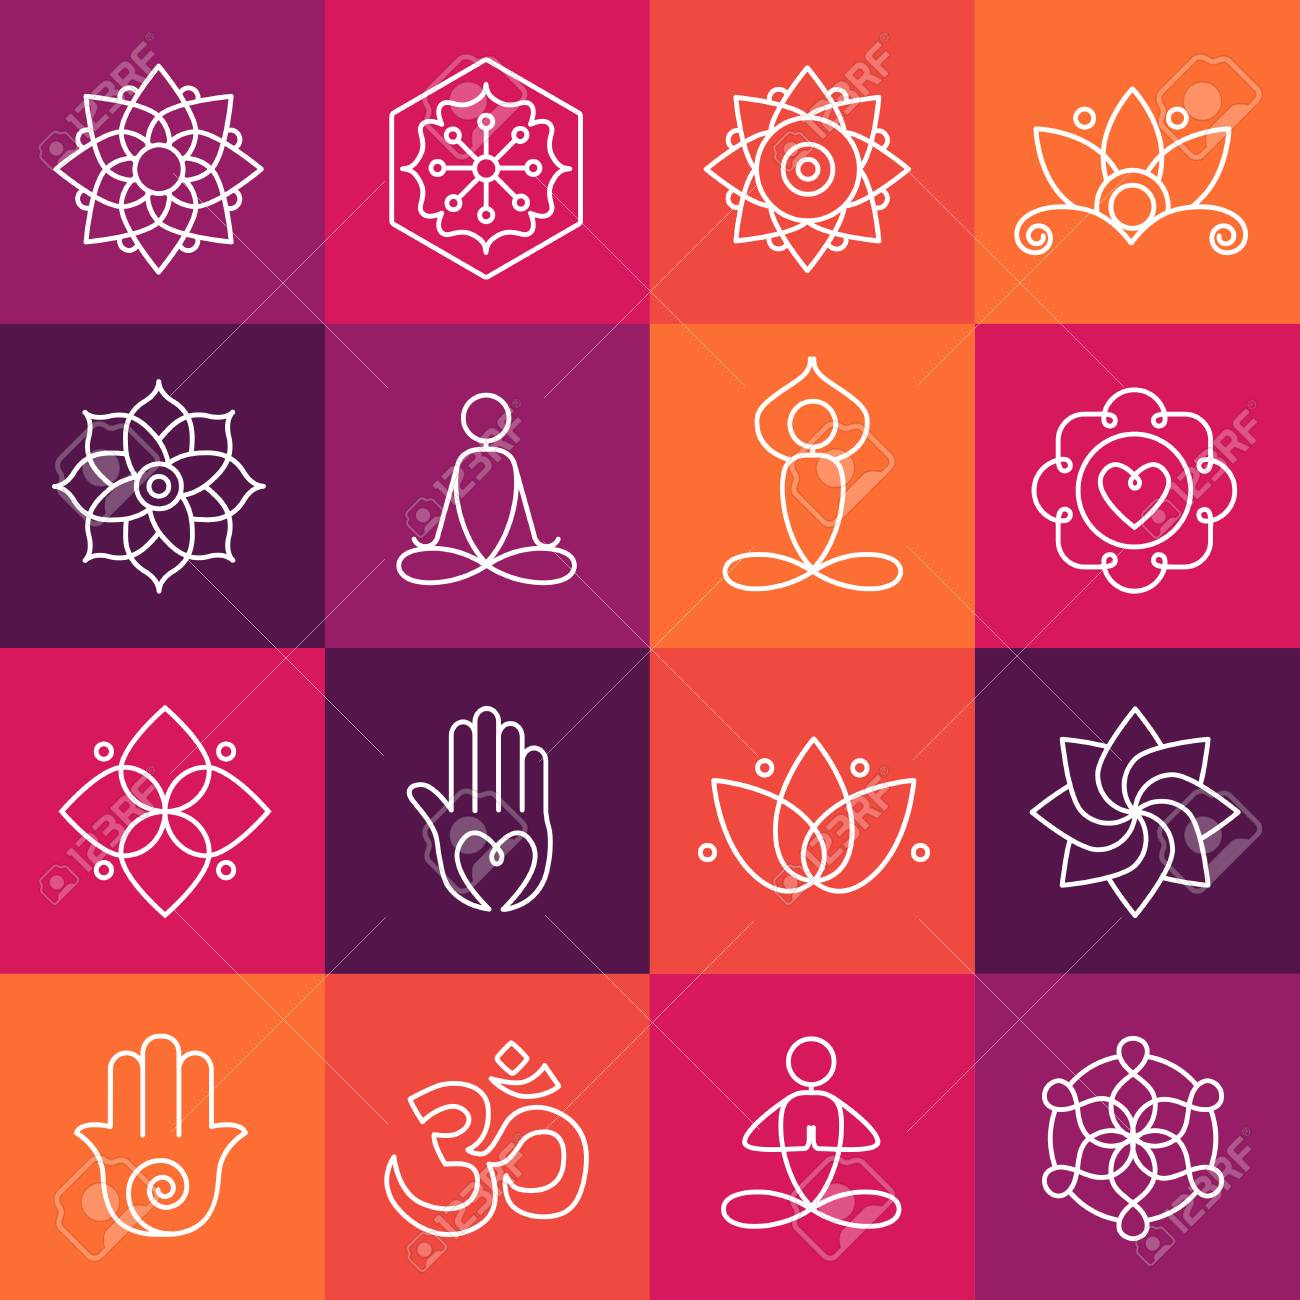 Collection Of Yoga Icons Relaxation And Meditation Symbols Royalty Free Cliparts Vectors And Stock Illustration Image 90968175